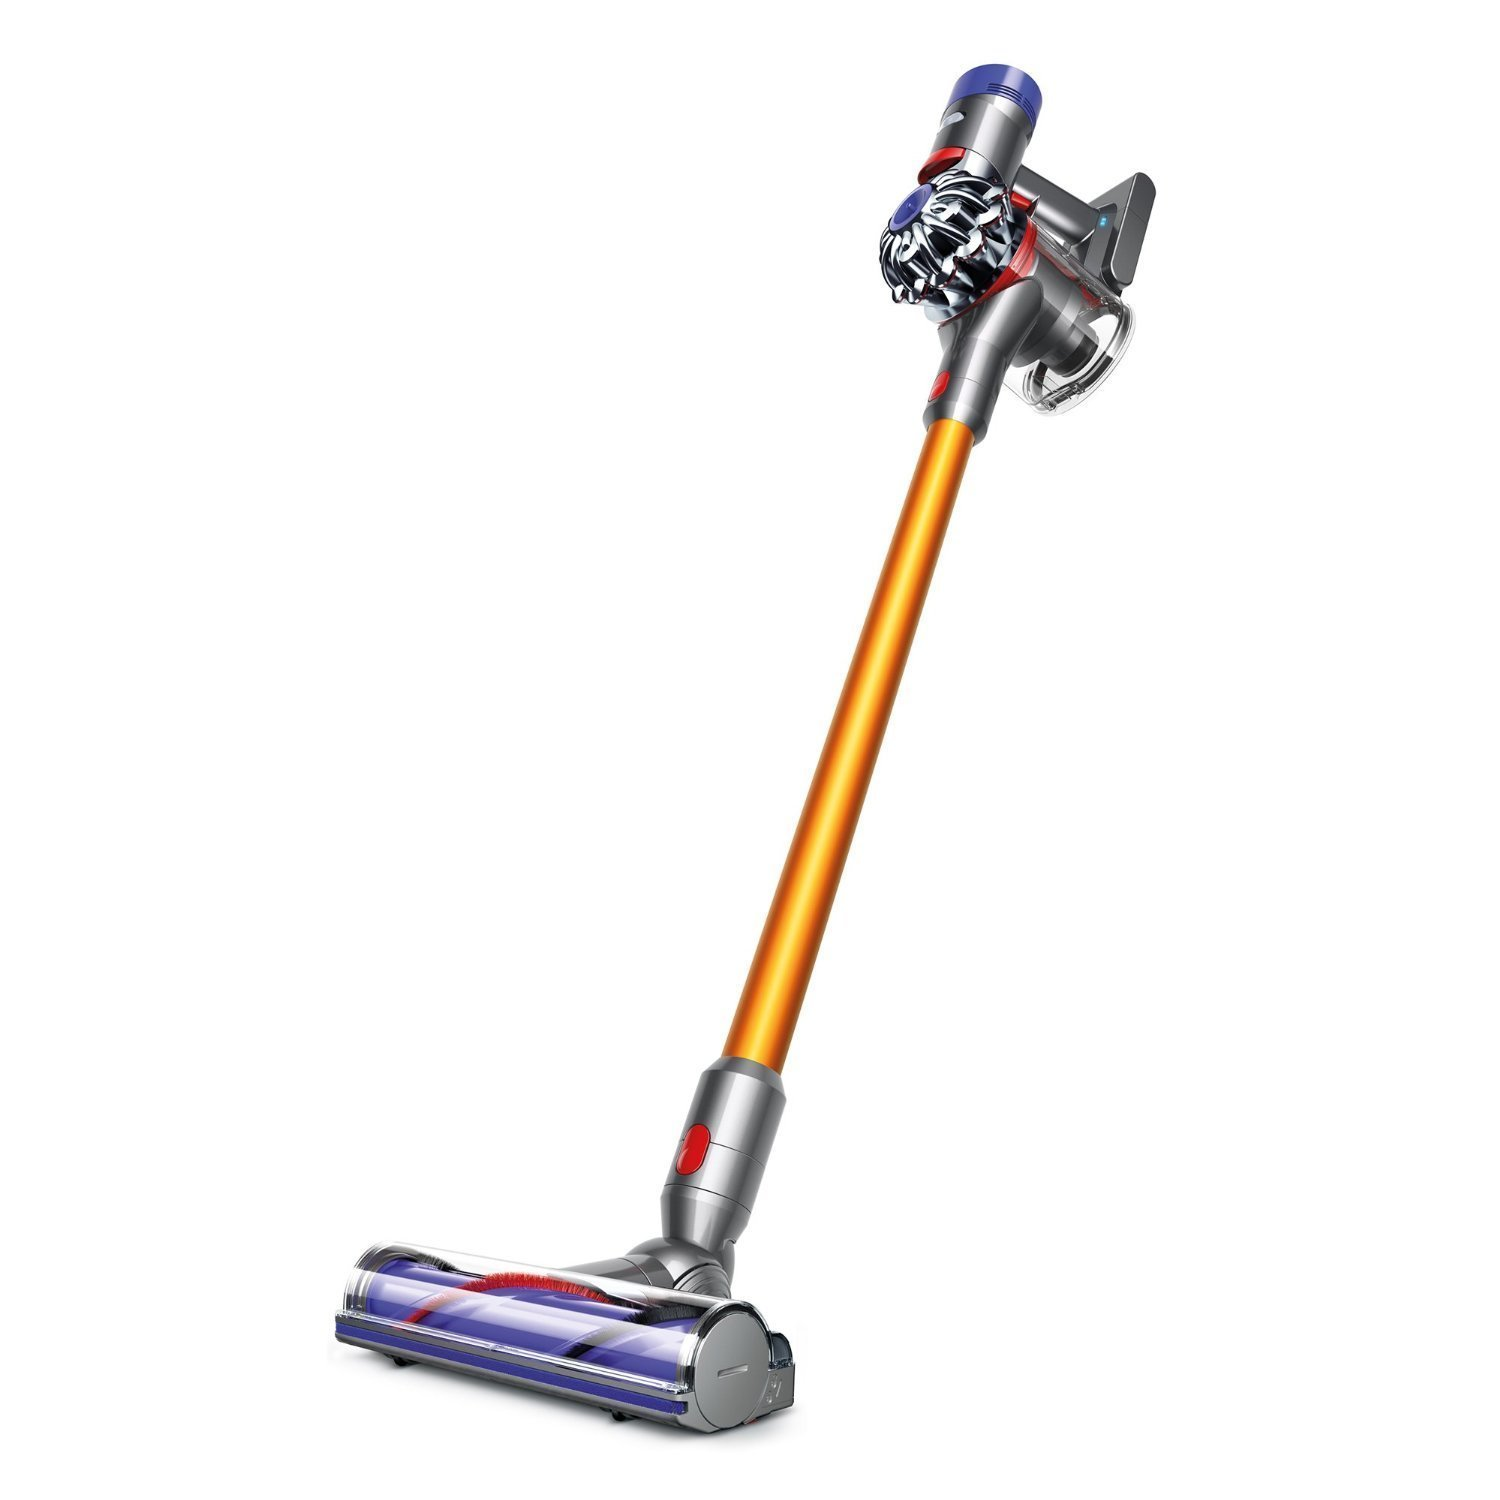 Dyson V8 Absolute Cordless HEPA Vacuum Cleaner + Fluffy Soft Roller and Direct